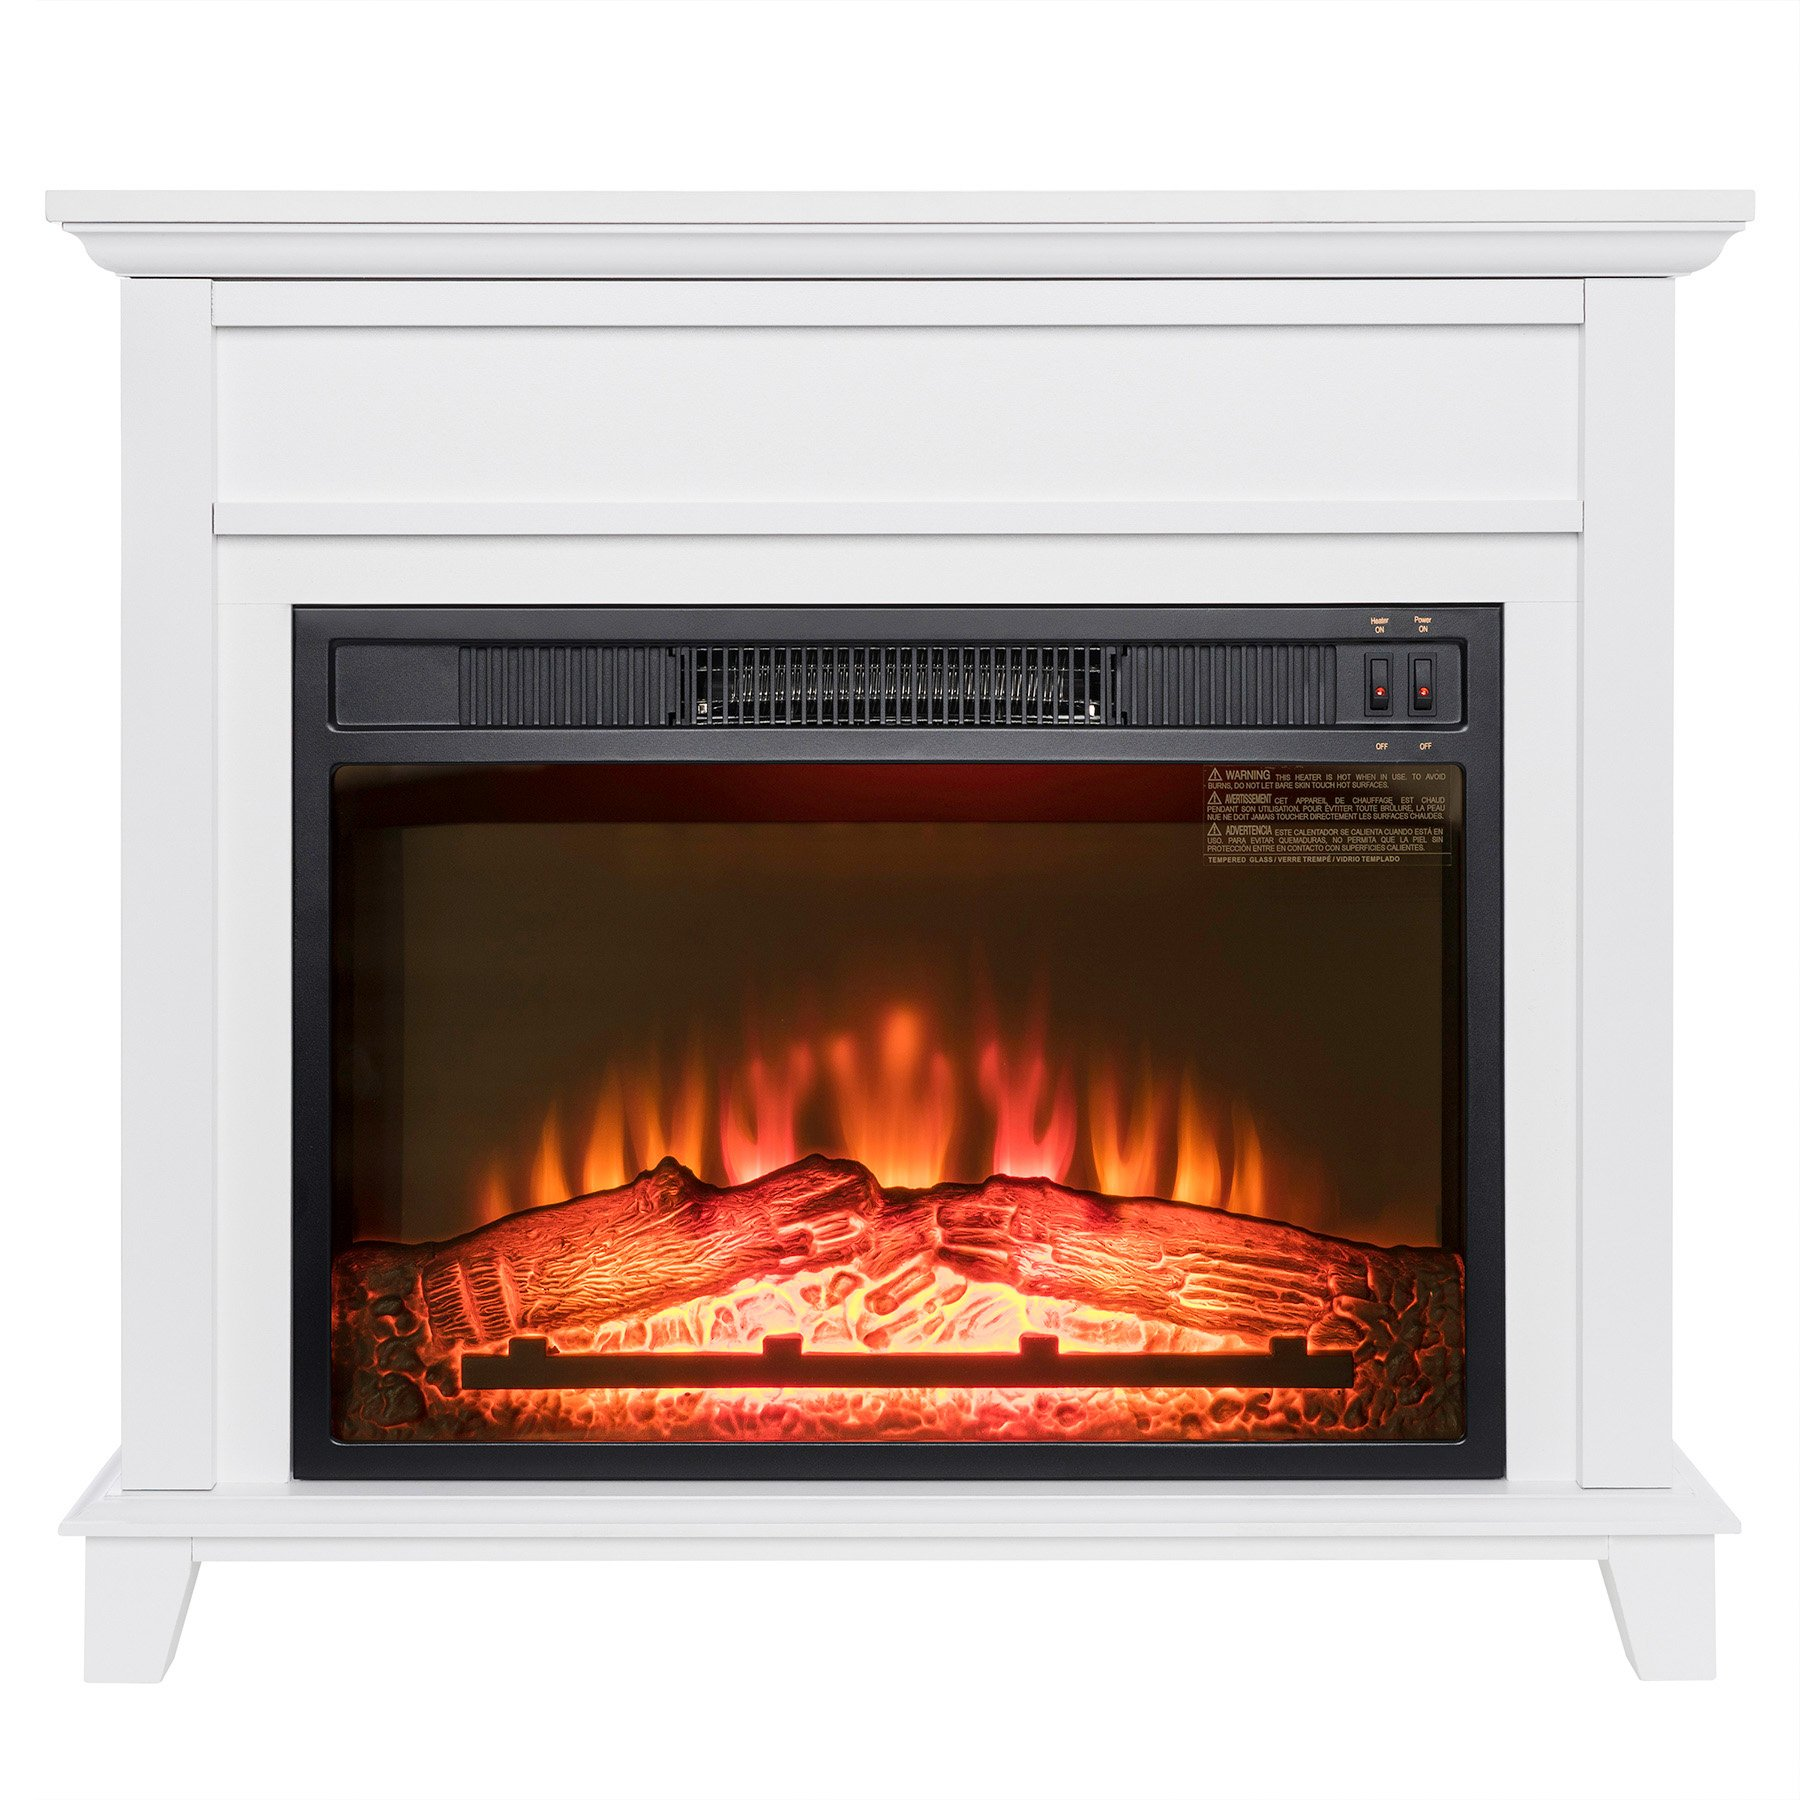 Golden Vantage 32'' Freestanding White Wood Finish Electric Fireplace Stove Heater